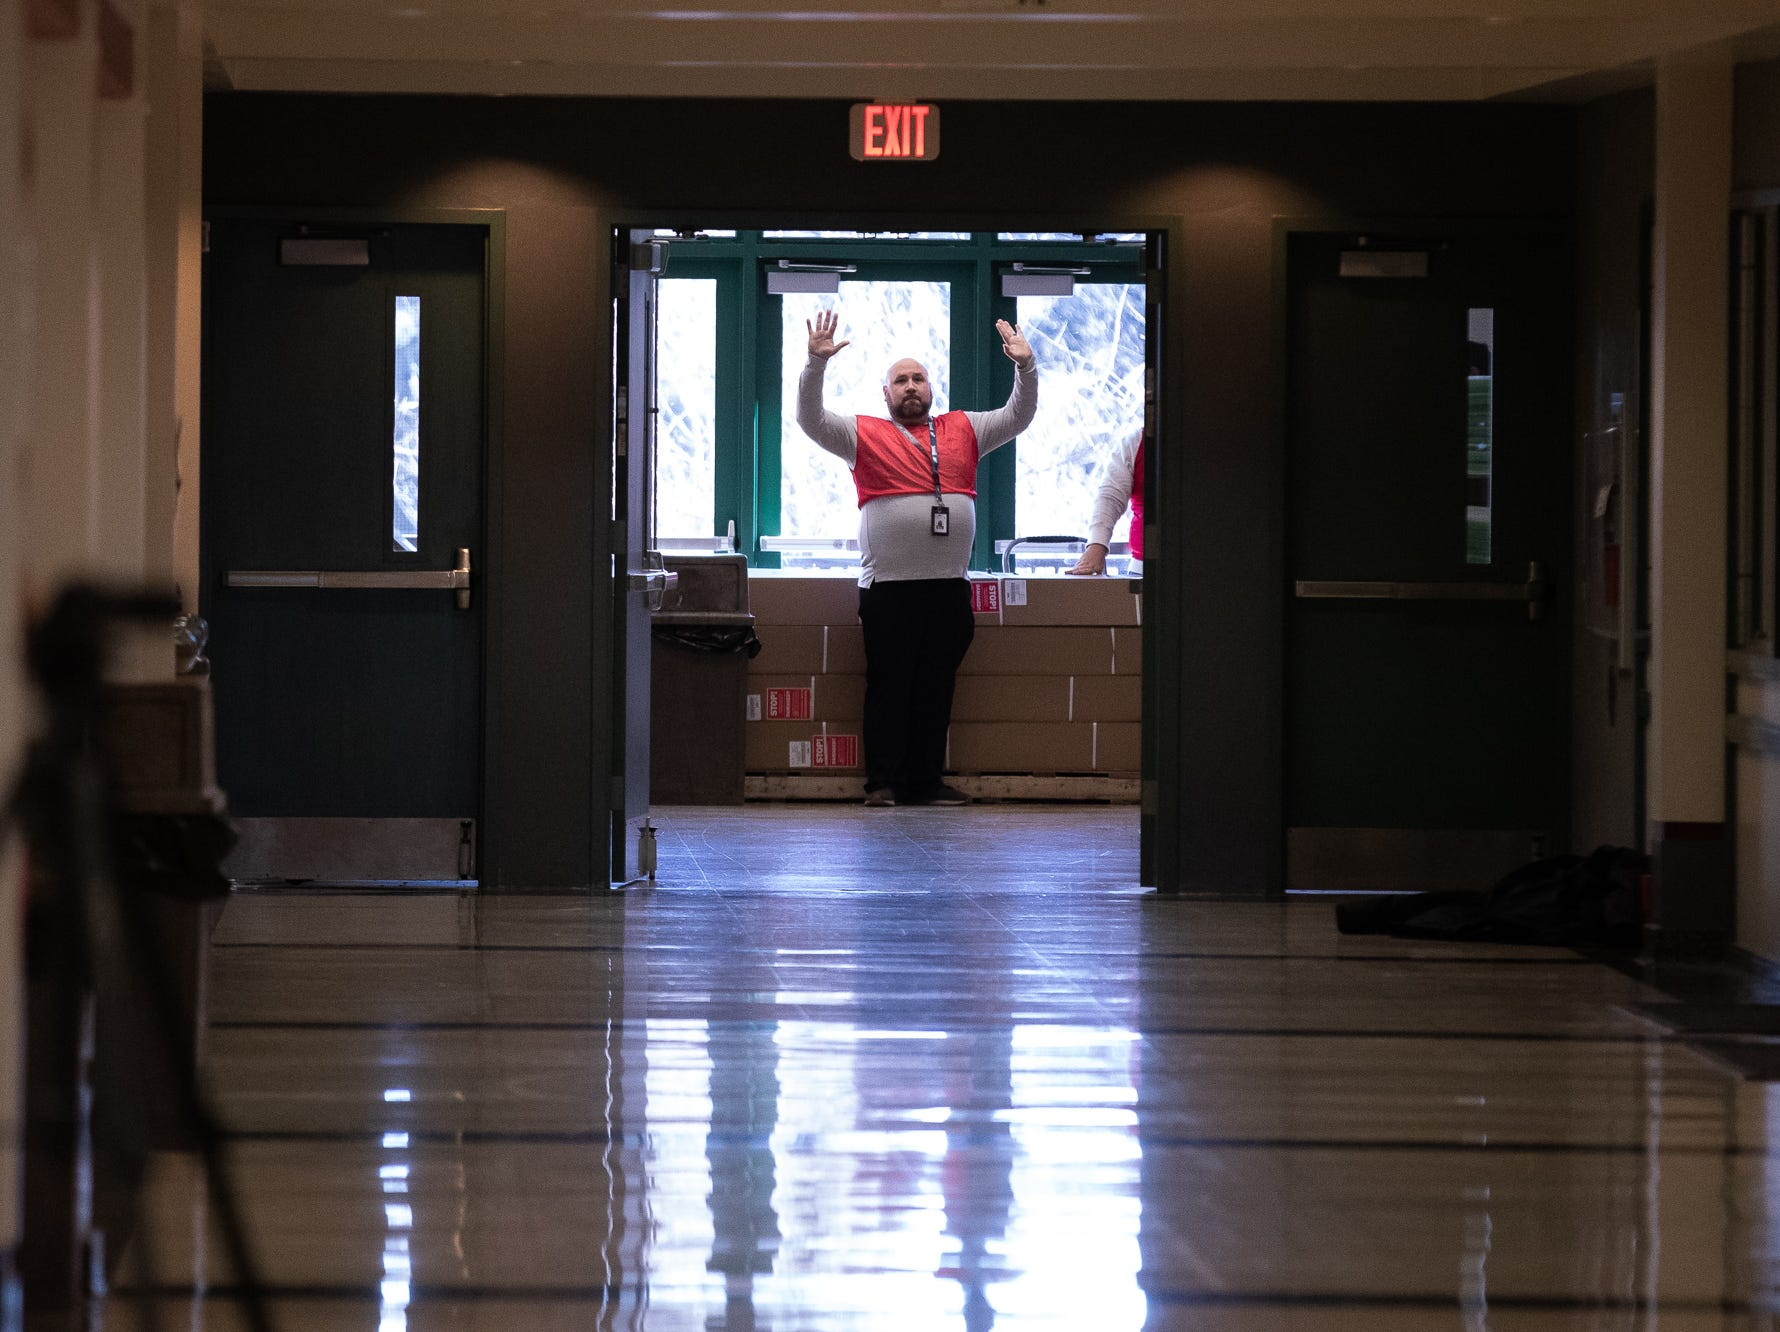 School staff raise their hands while they take part in an active shooter drill at South Western High School, Monday, Jan. 21, 2019, in Penn Township. The drill simulated multiple scenarios involving an active shooter, allowing school security and local law enforcement agencies a hands-on opportunity to drill on engaging an active shooter while also giving school staff experience with how real world scenarios could unfold.